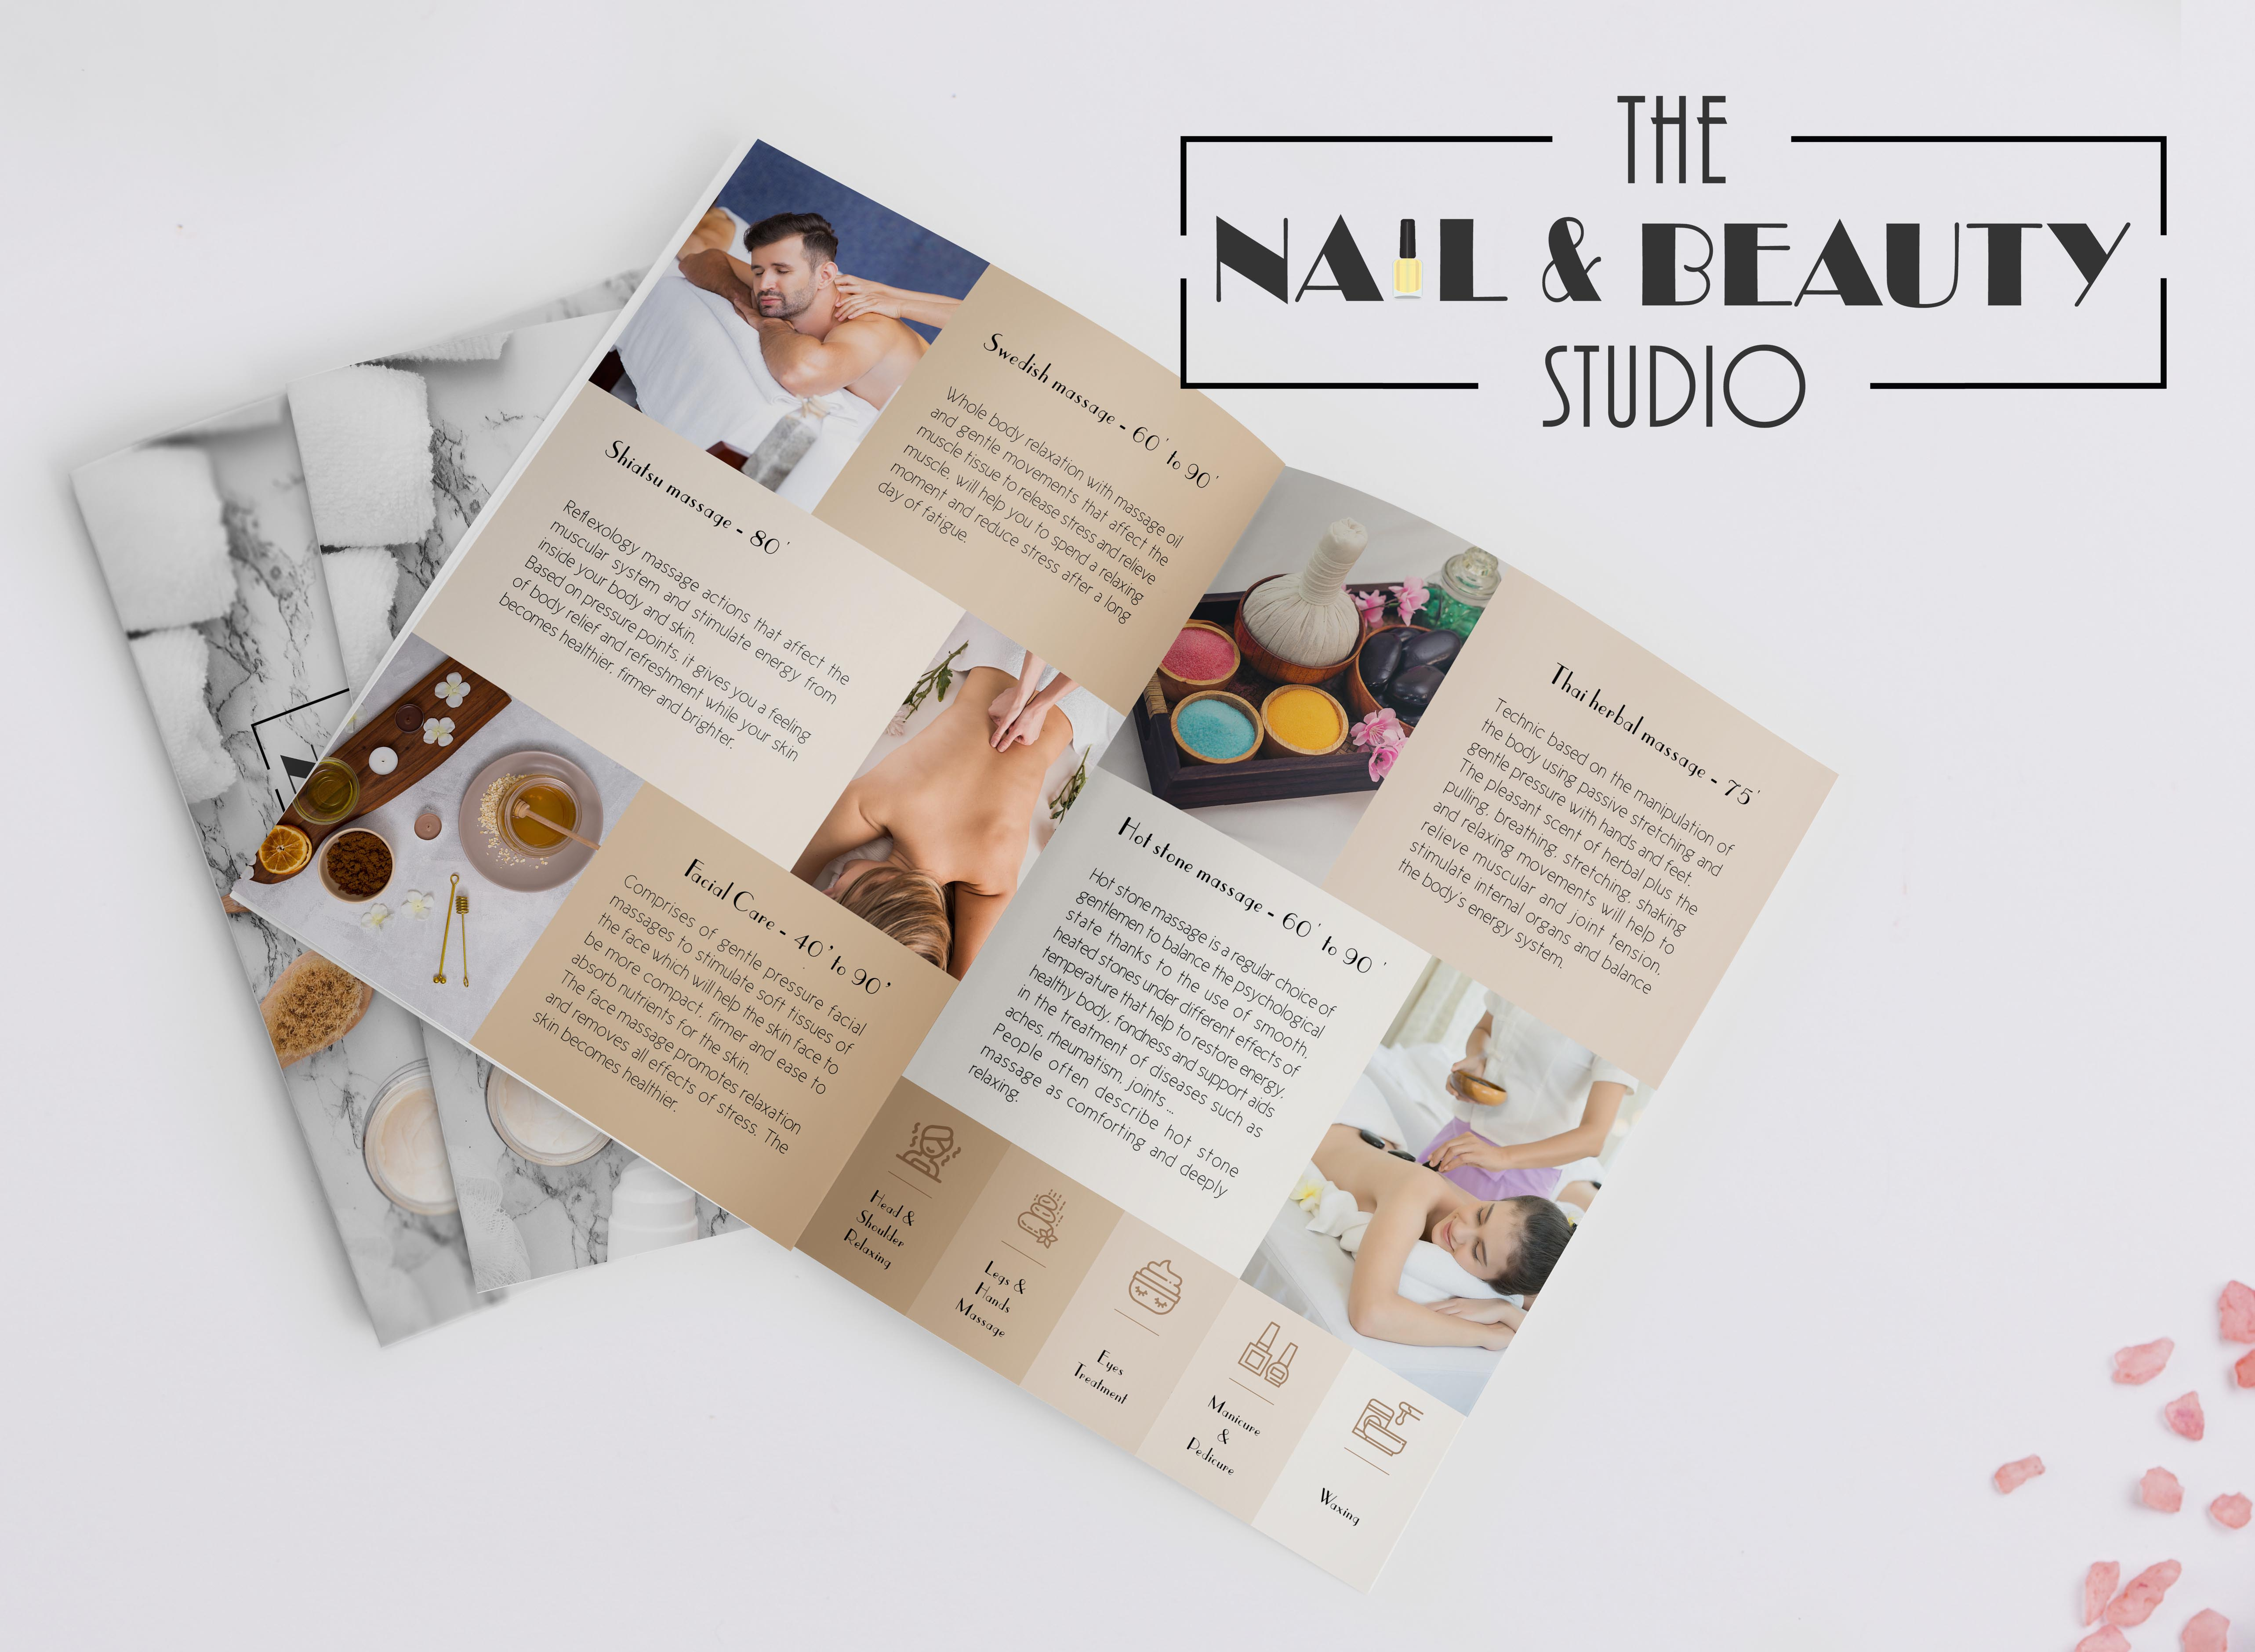 The Nail & Beauty Studio Project